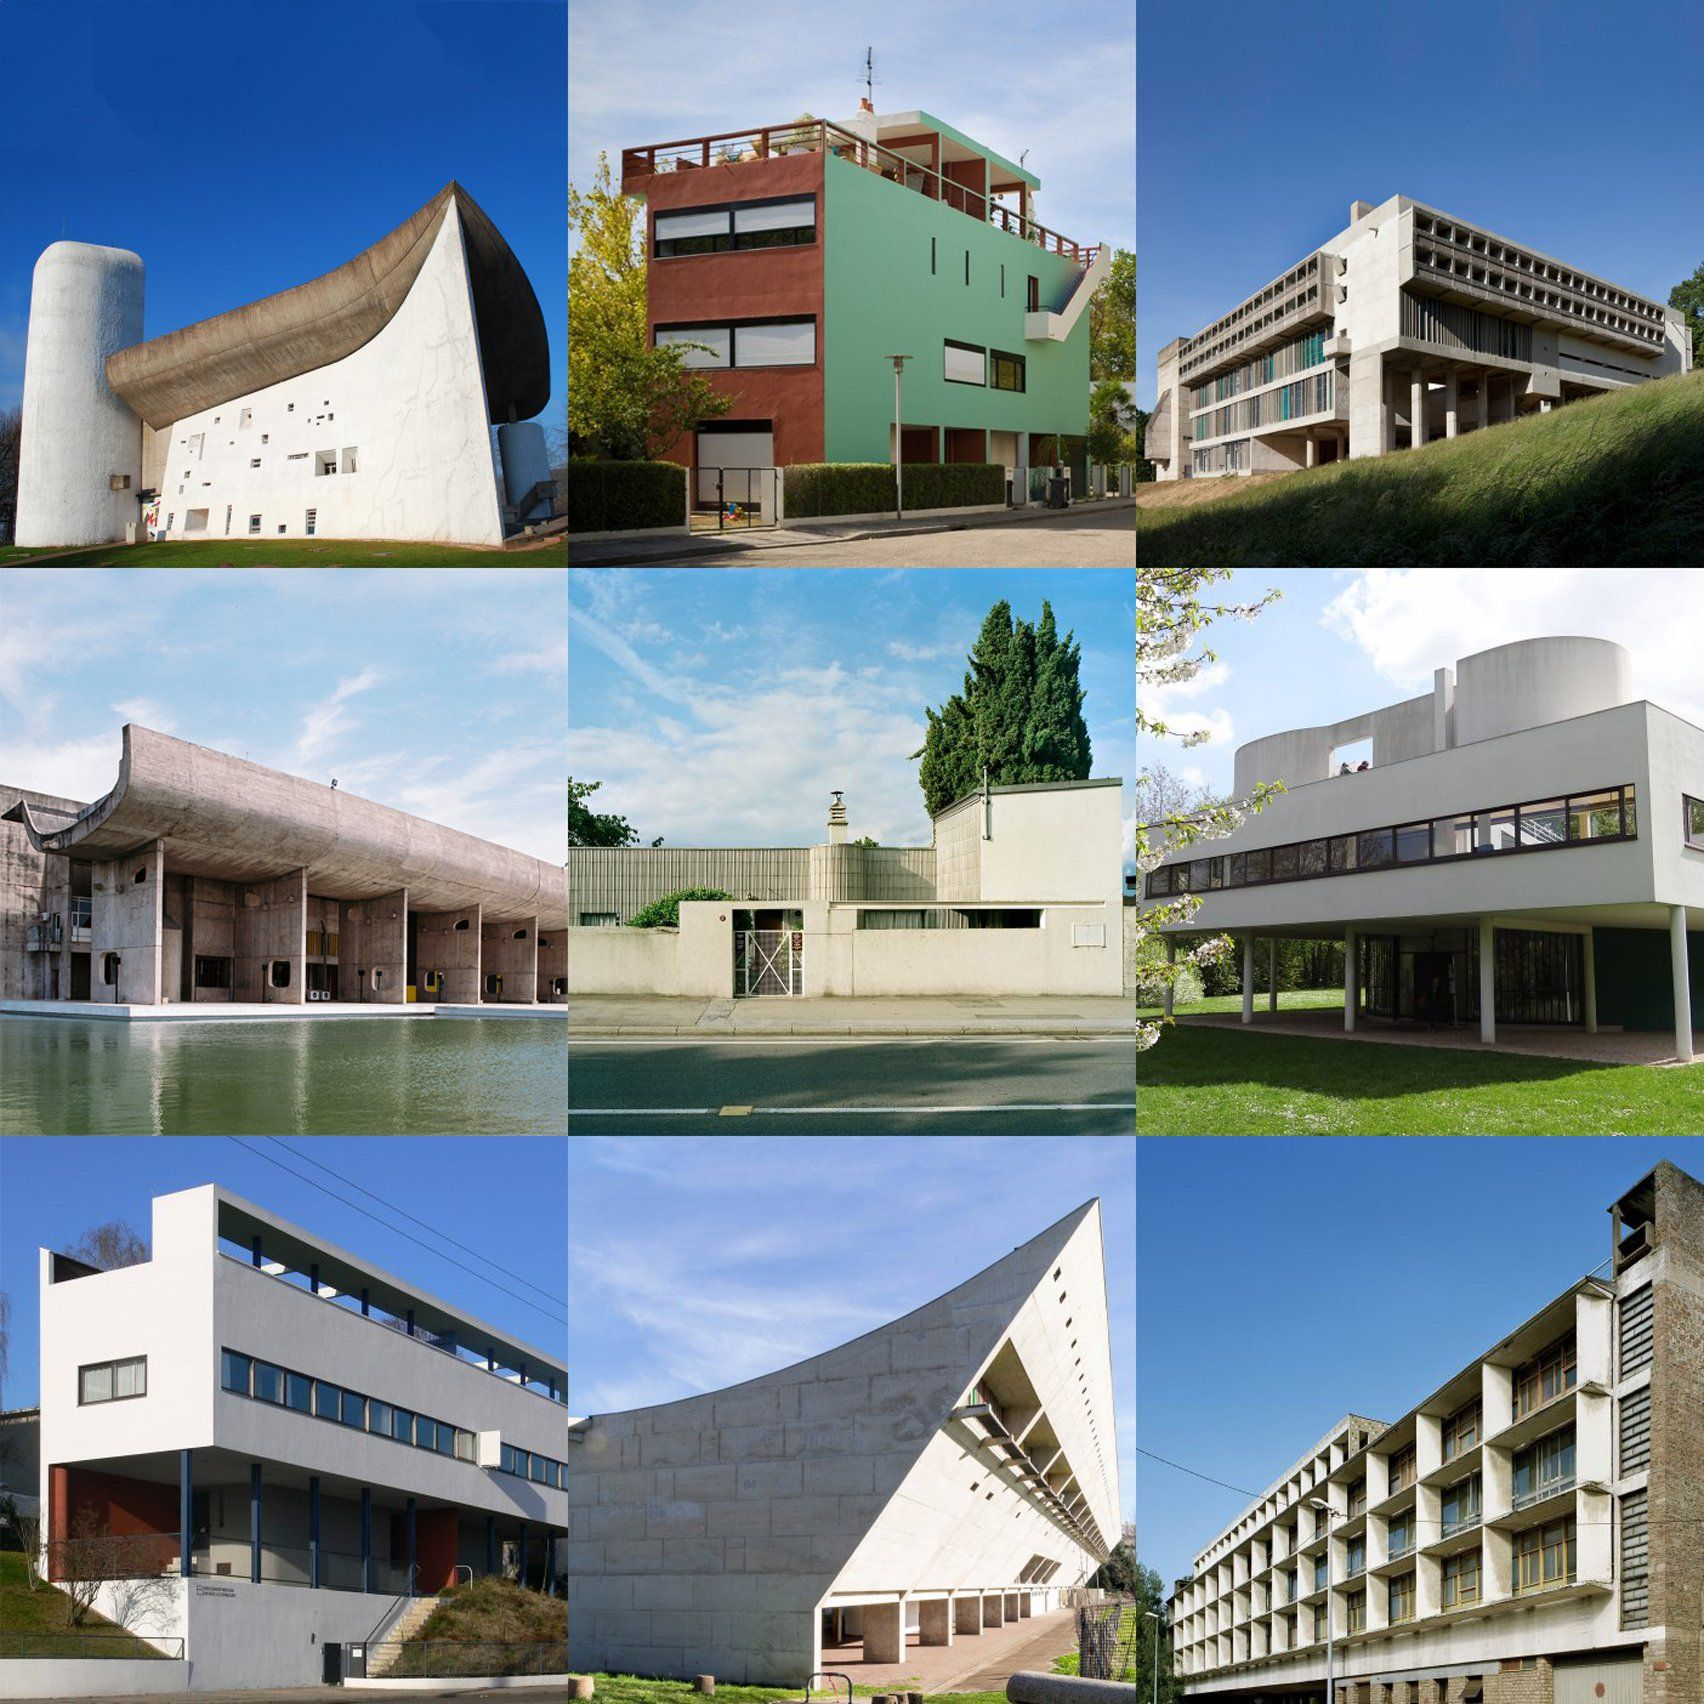 Architecture by Le Corbusier featured on Dezeen